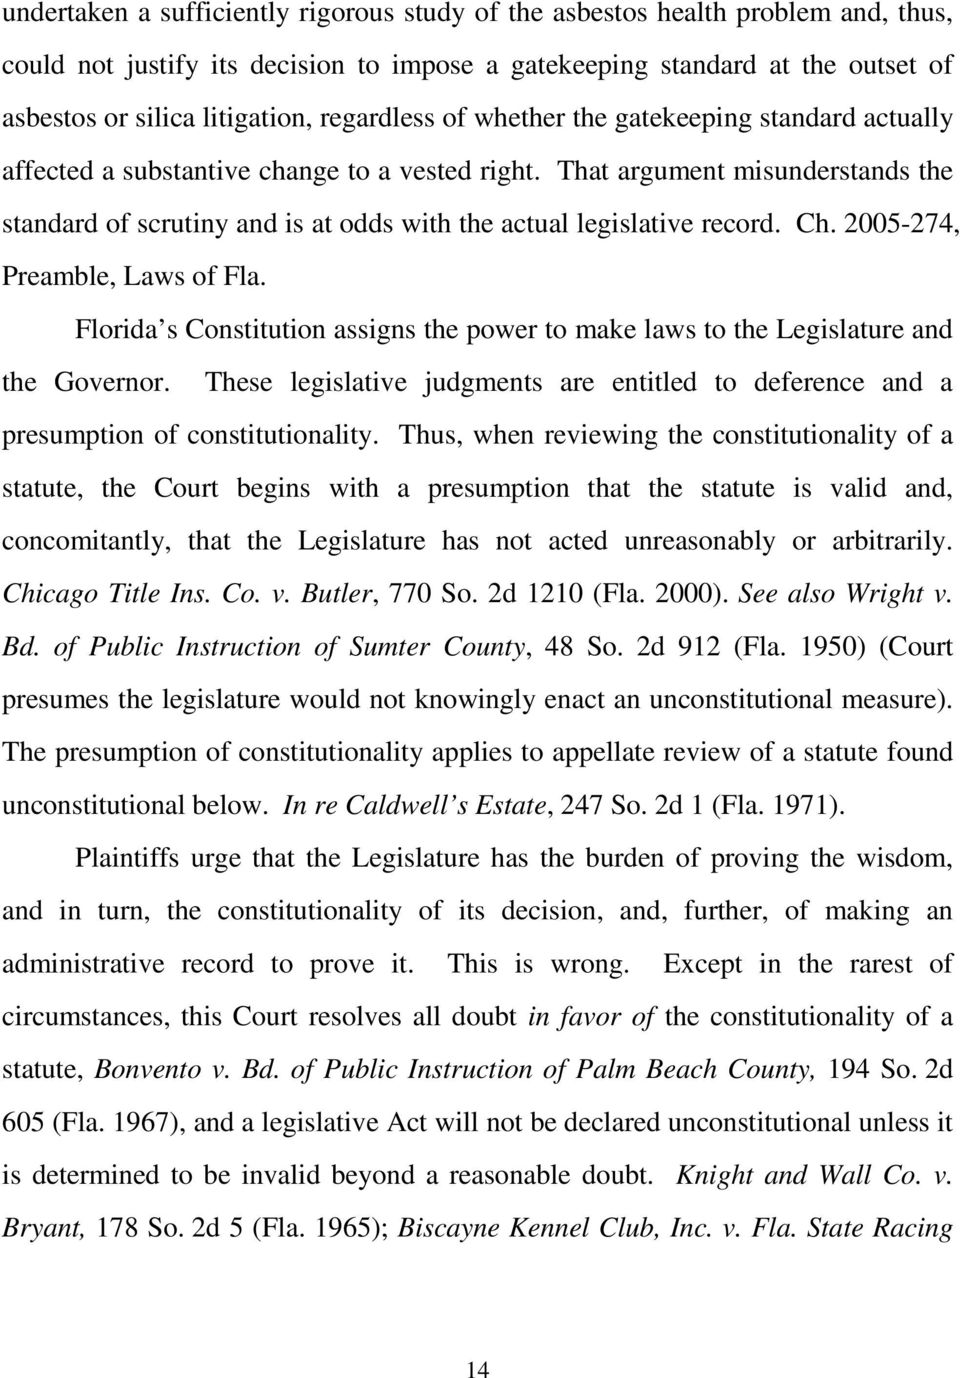 That argument misunderstands the standard of scrutiny and is at odds with the actual legislative record. Ch. 2005-274, Preamble, Laws of Fla.